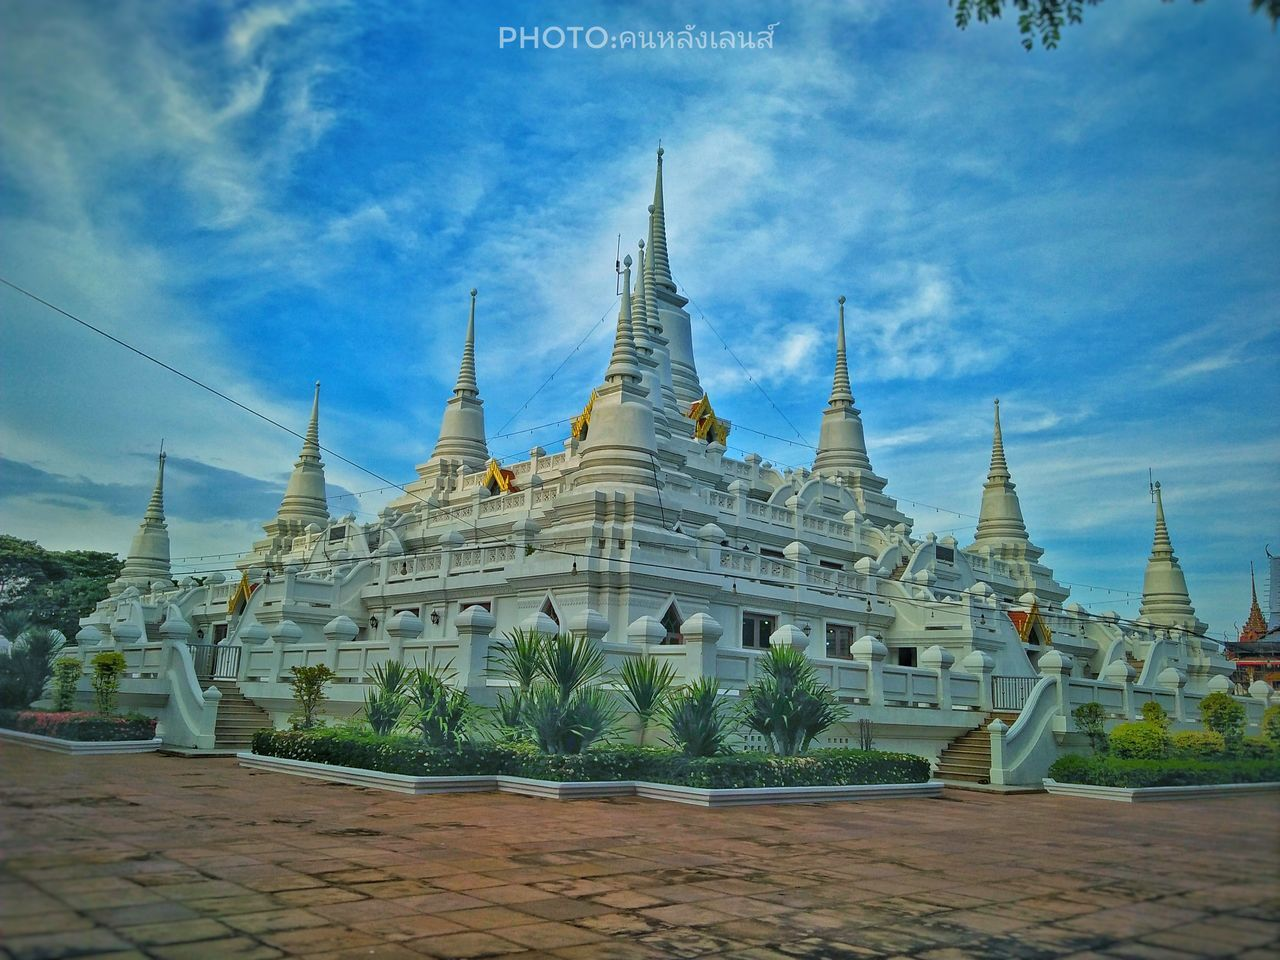 religion, place of worship, spirituality, sky, pagoda, architecture, travel destinations, built structure, no people, landscape, day, nature, outdoors, building exterior